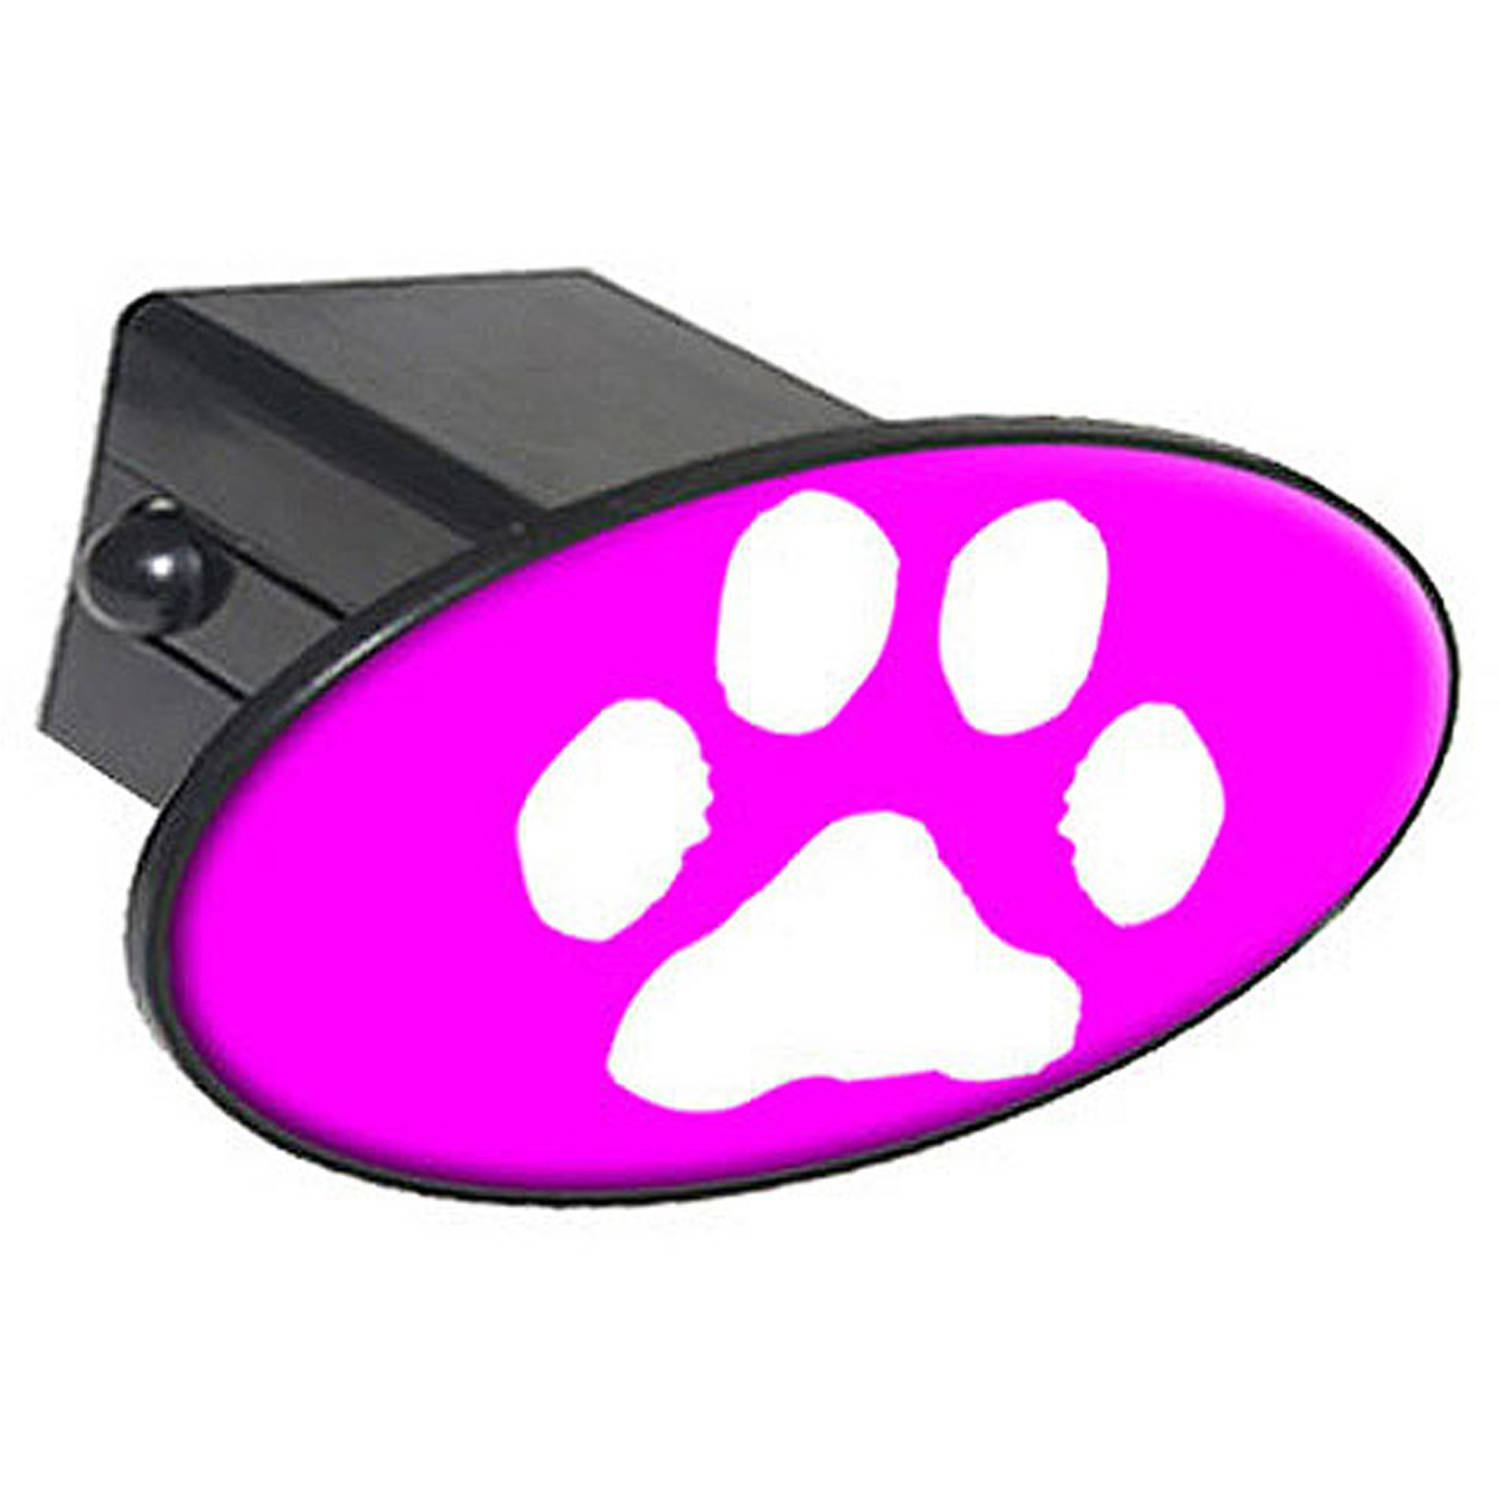 """Paw Print White On Hot Pink 2"""" Oval Tow Trailer Hitch Cover Plug Insert"""